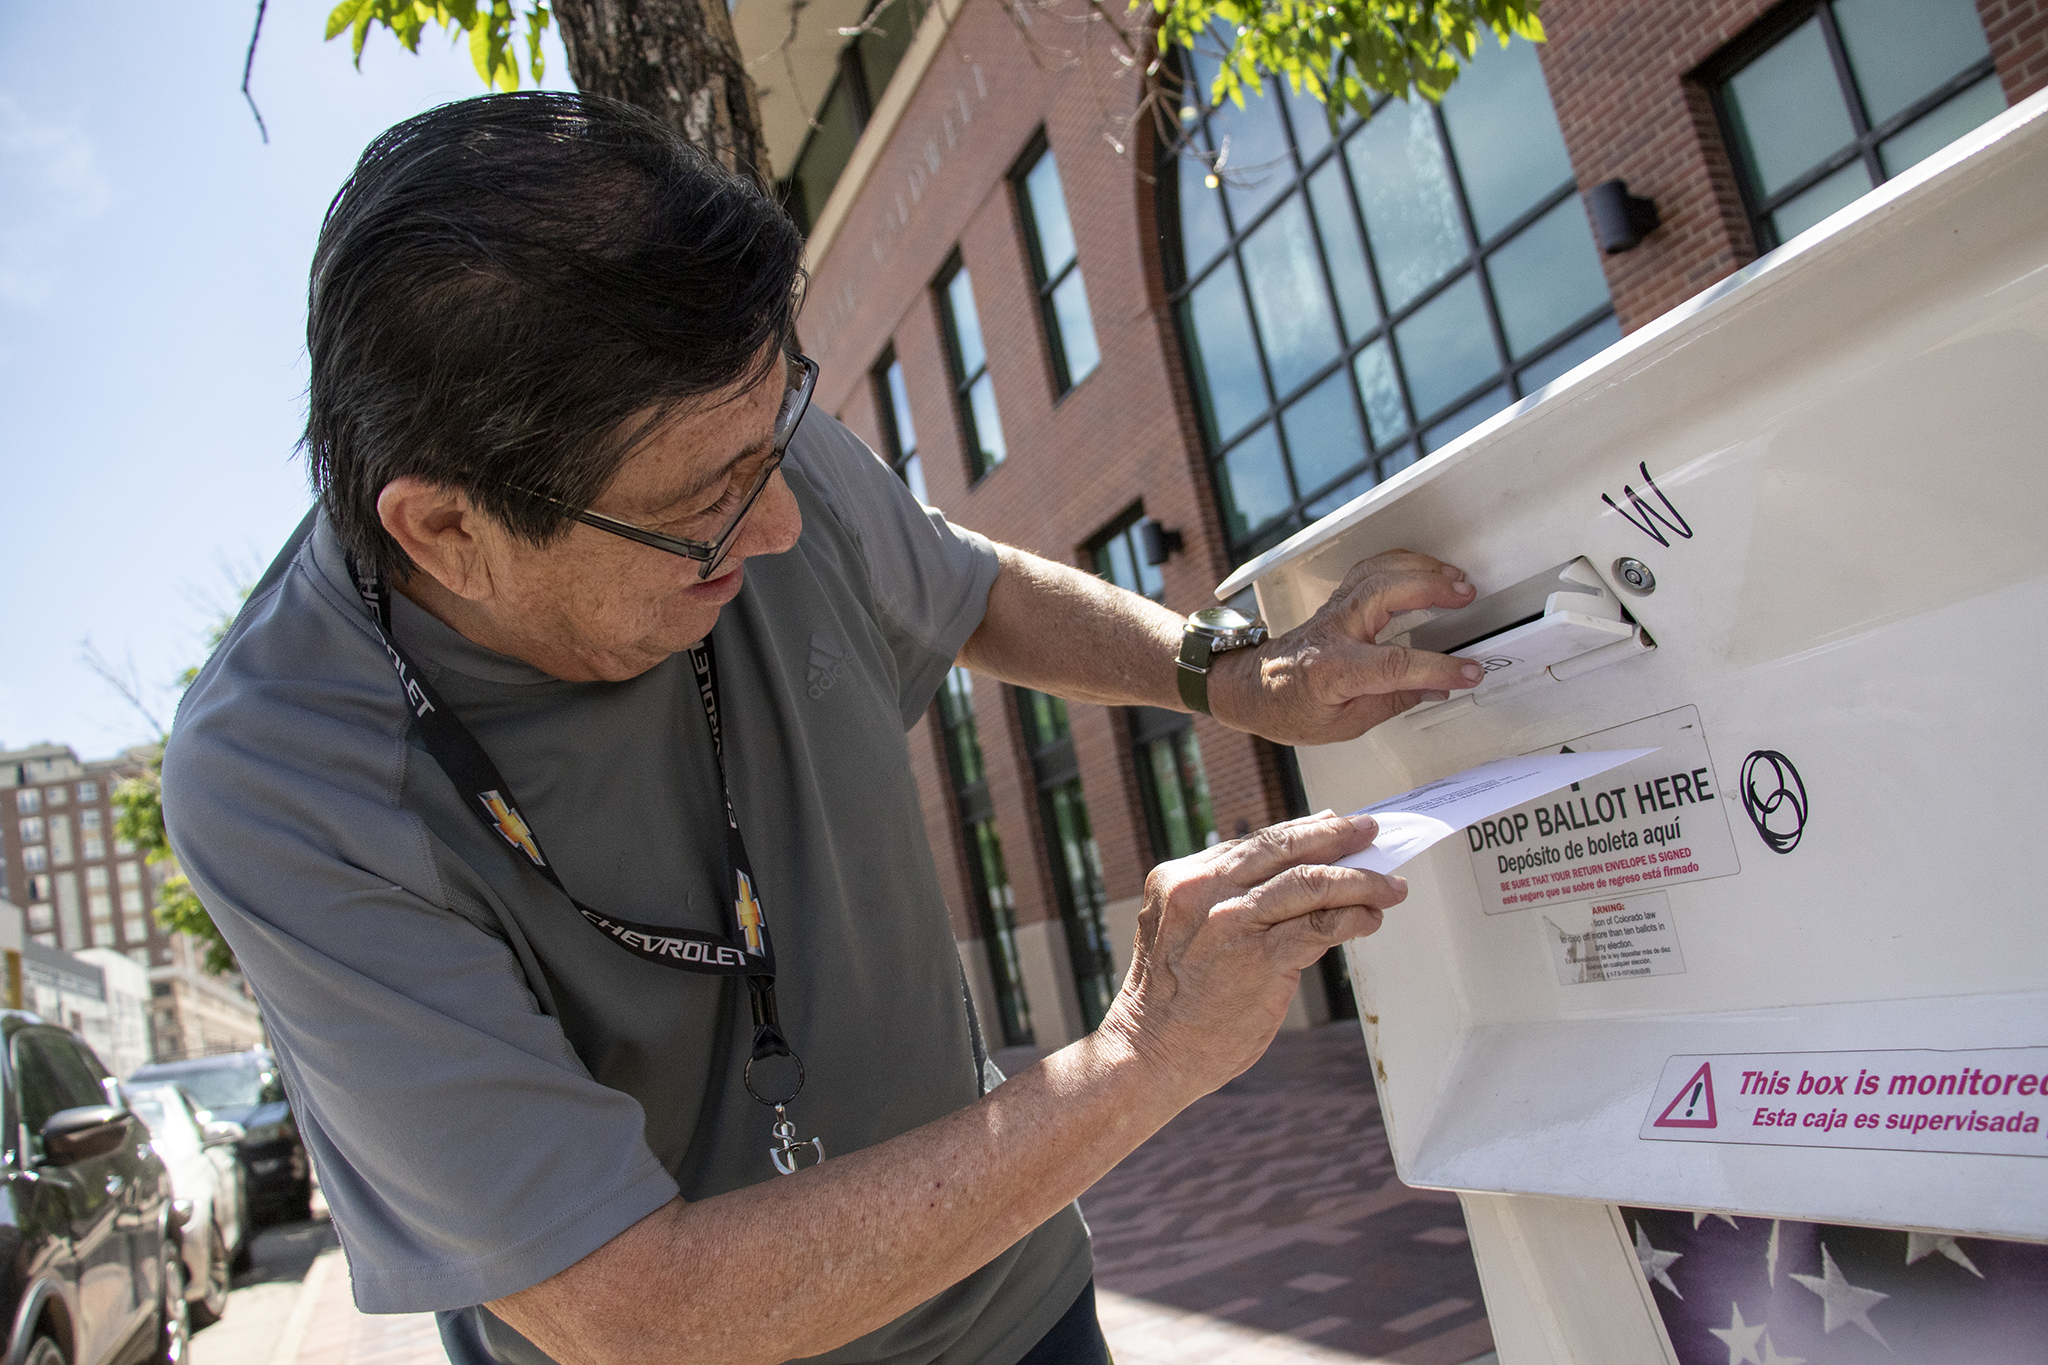 Kenny Borrego casts his ballot outside of the Blair-Caldwell African American Research Library on Welton Street. Five Points, June 4, 2019.